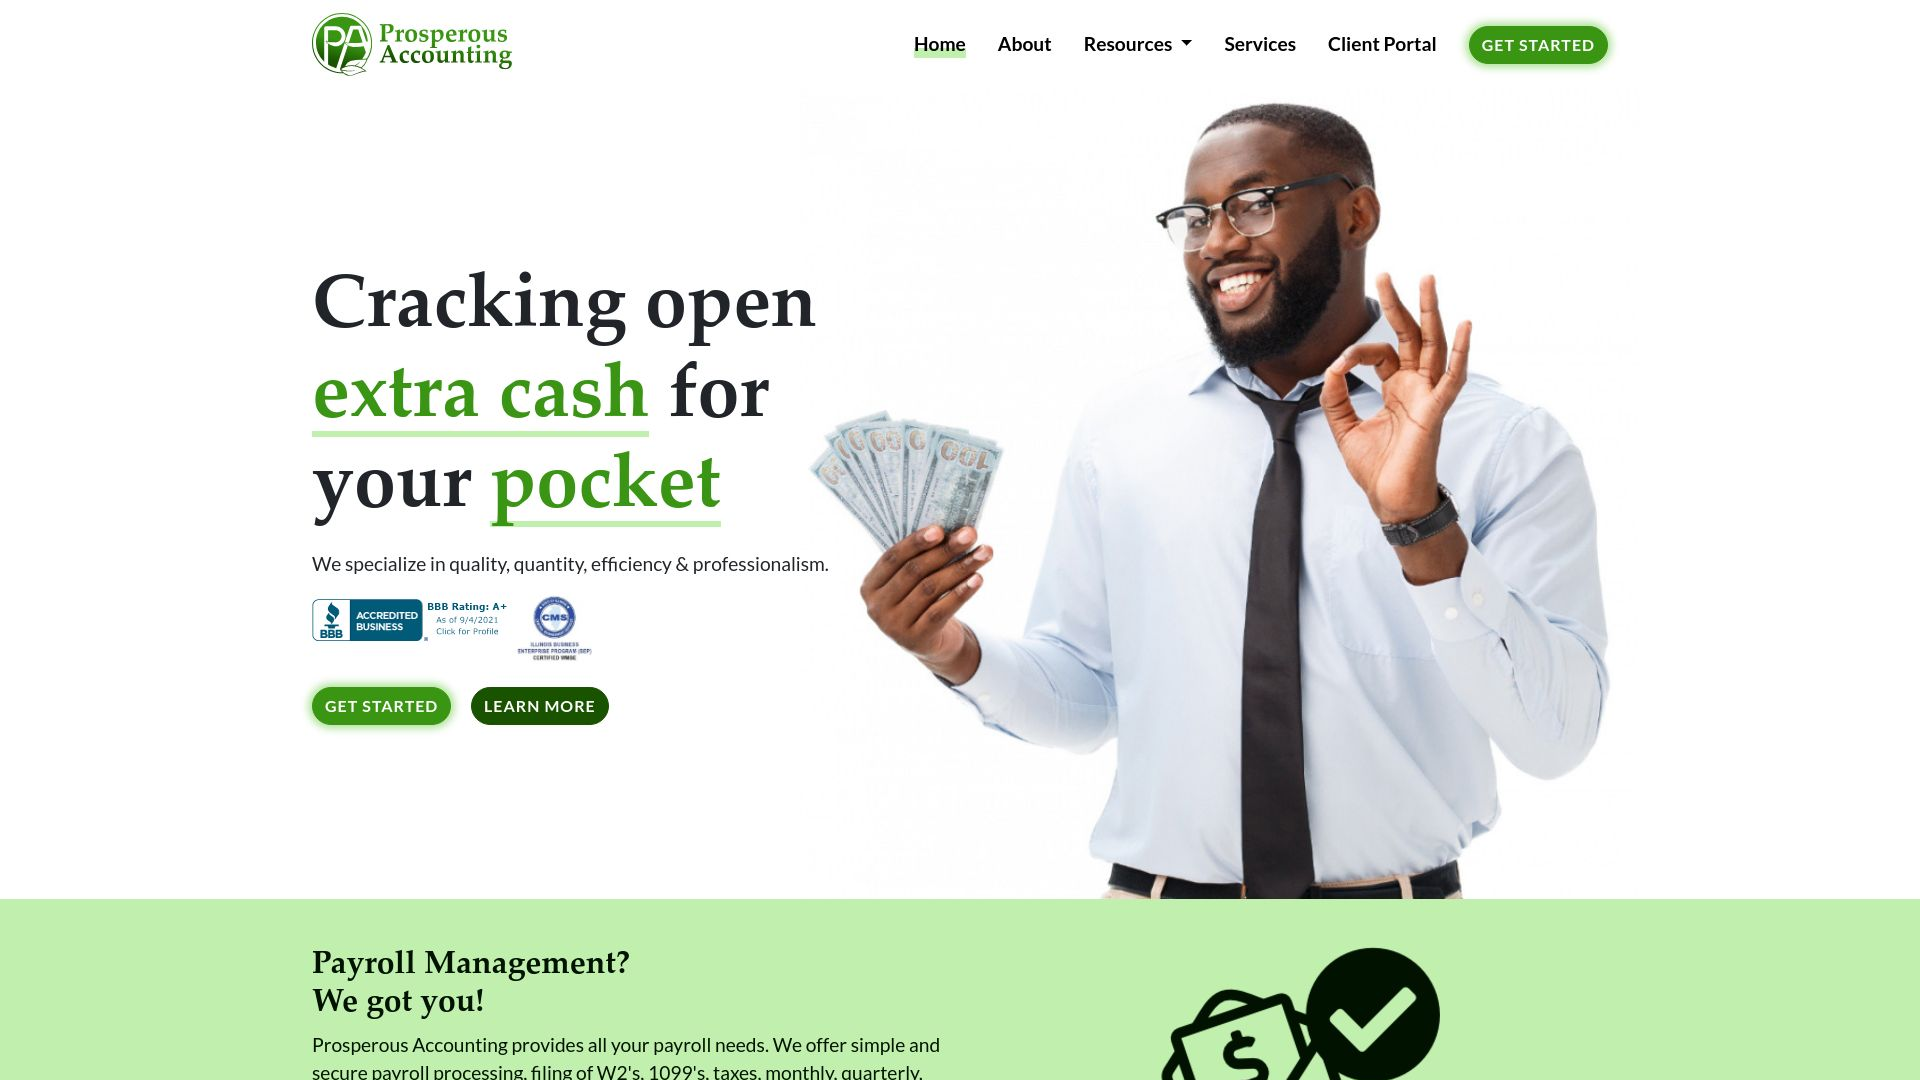 Prosperous Accounting Services